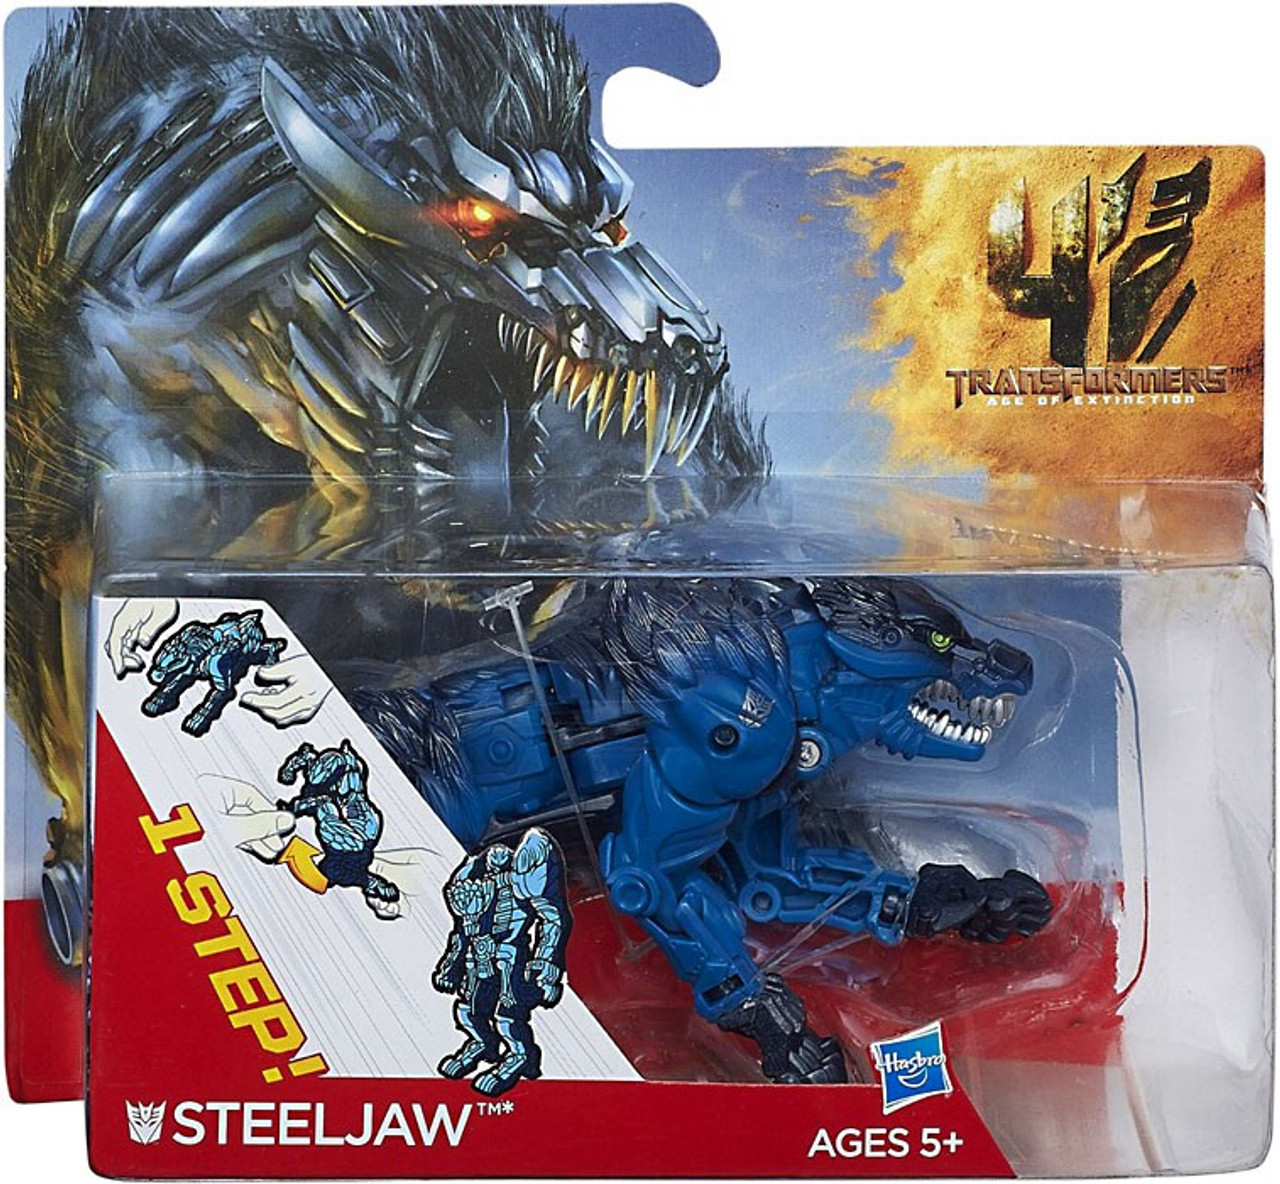 Transformers Age of Extinction 1 Step Changer Steeljaw Action Figure